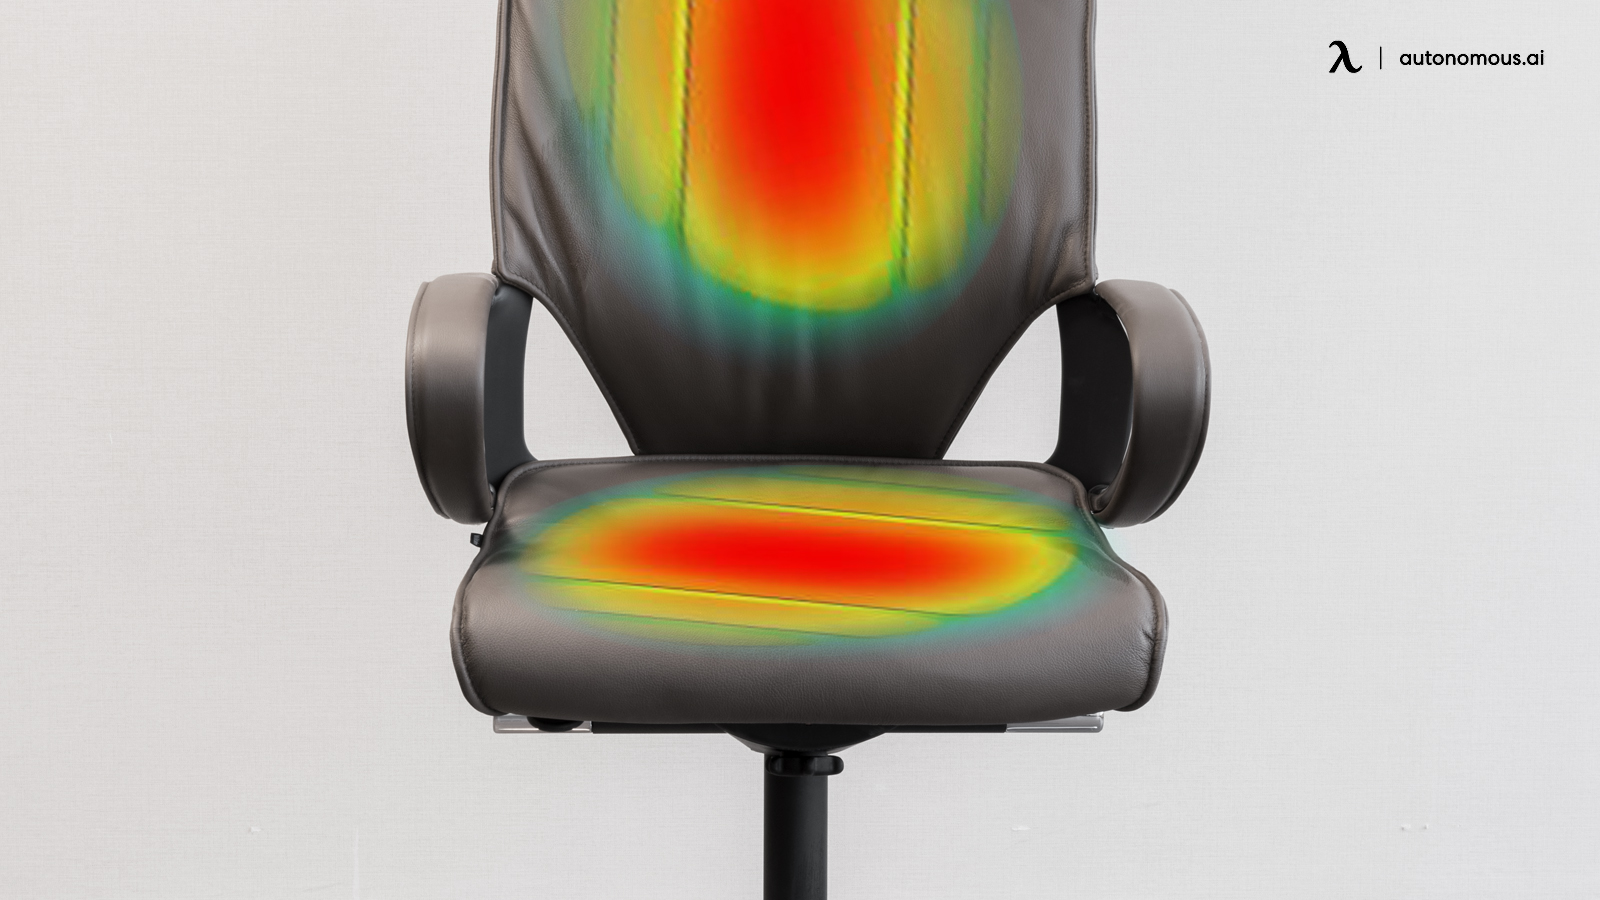 Thermals on hot chair